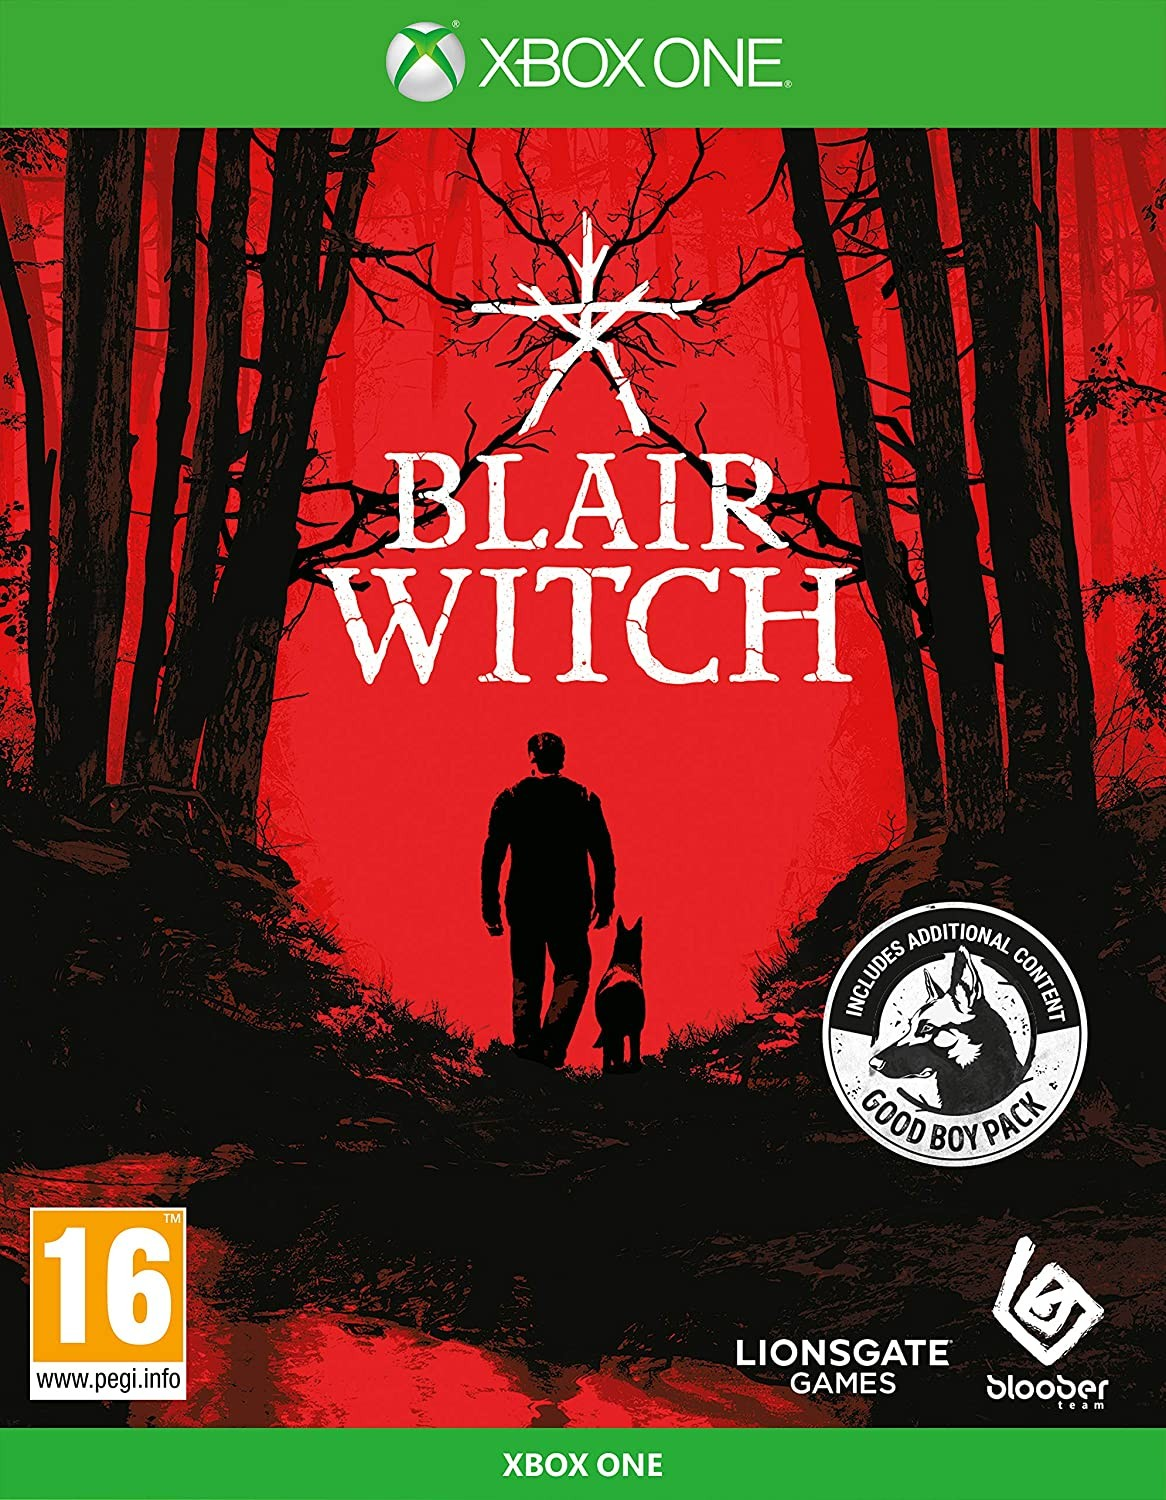 Blair Witch XONE